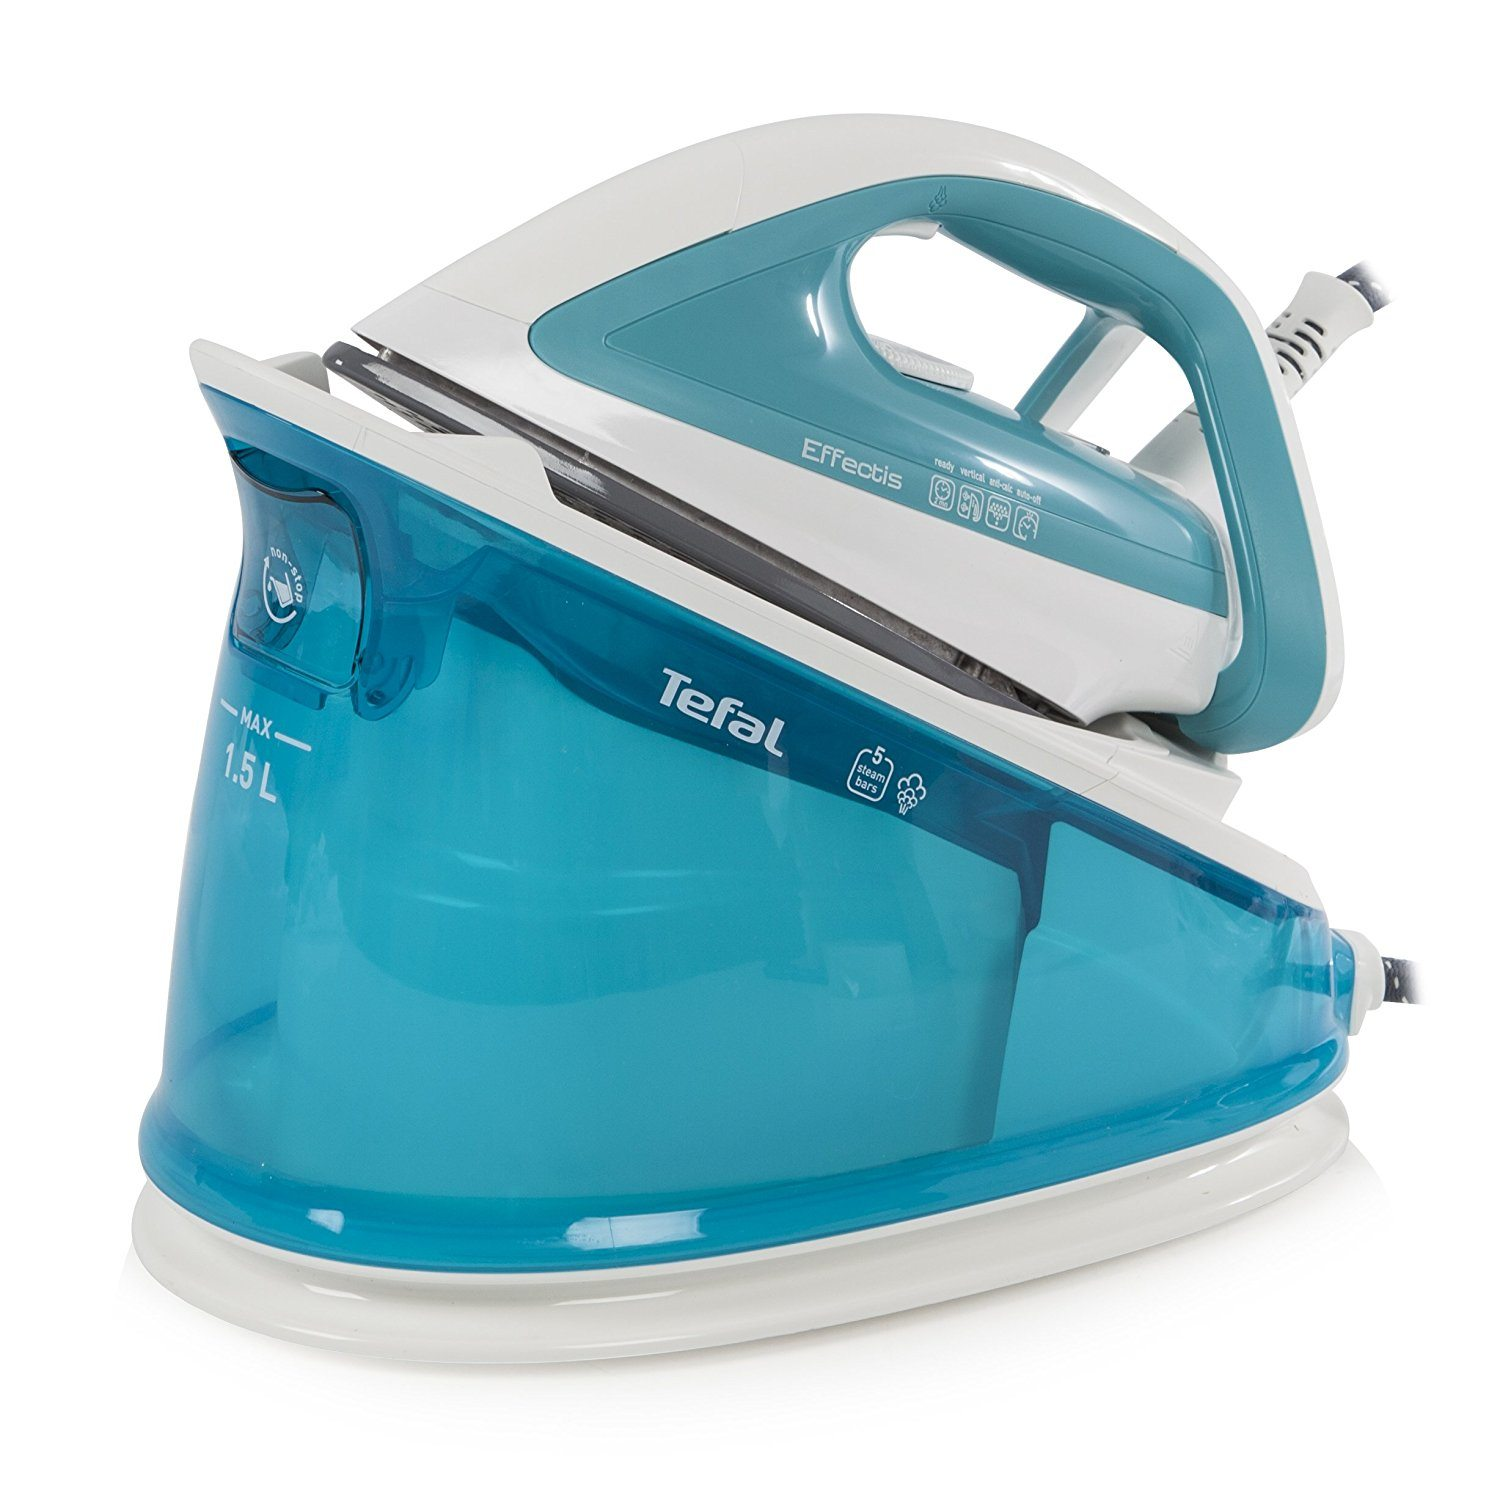 Tefal GV6720 Effectis Steam Generator Iron UK Review